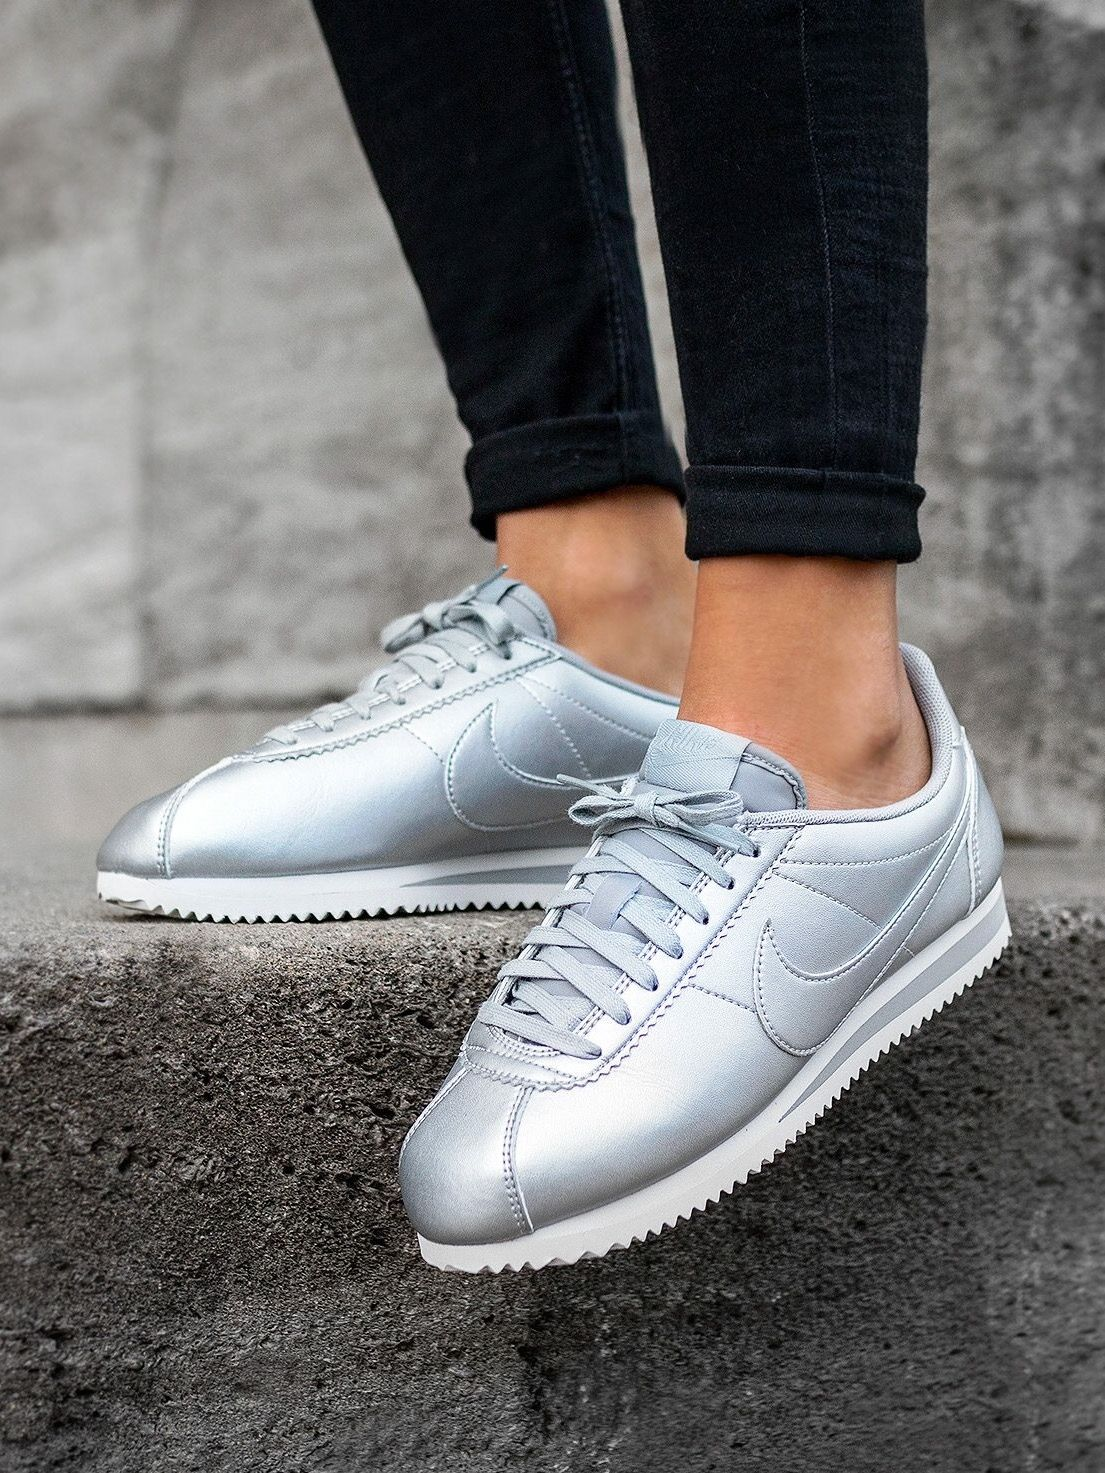 nike cortez silver m o d e pinterest chaussures femmes basket femme et chaussure. Black Bedroom Furniture Sets. Home Design Ideas